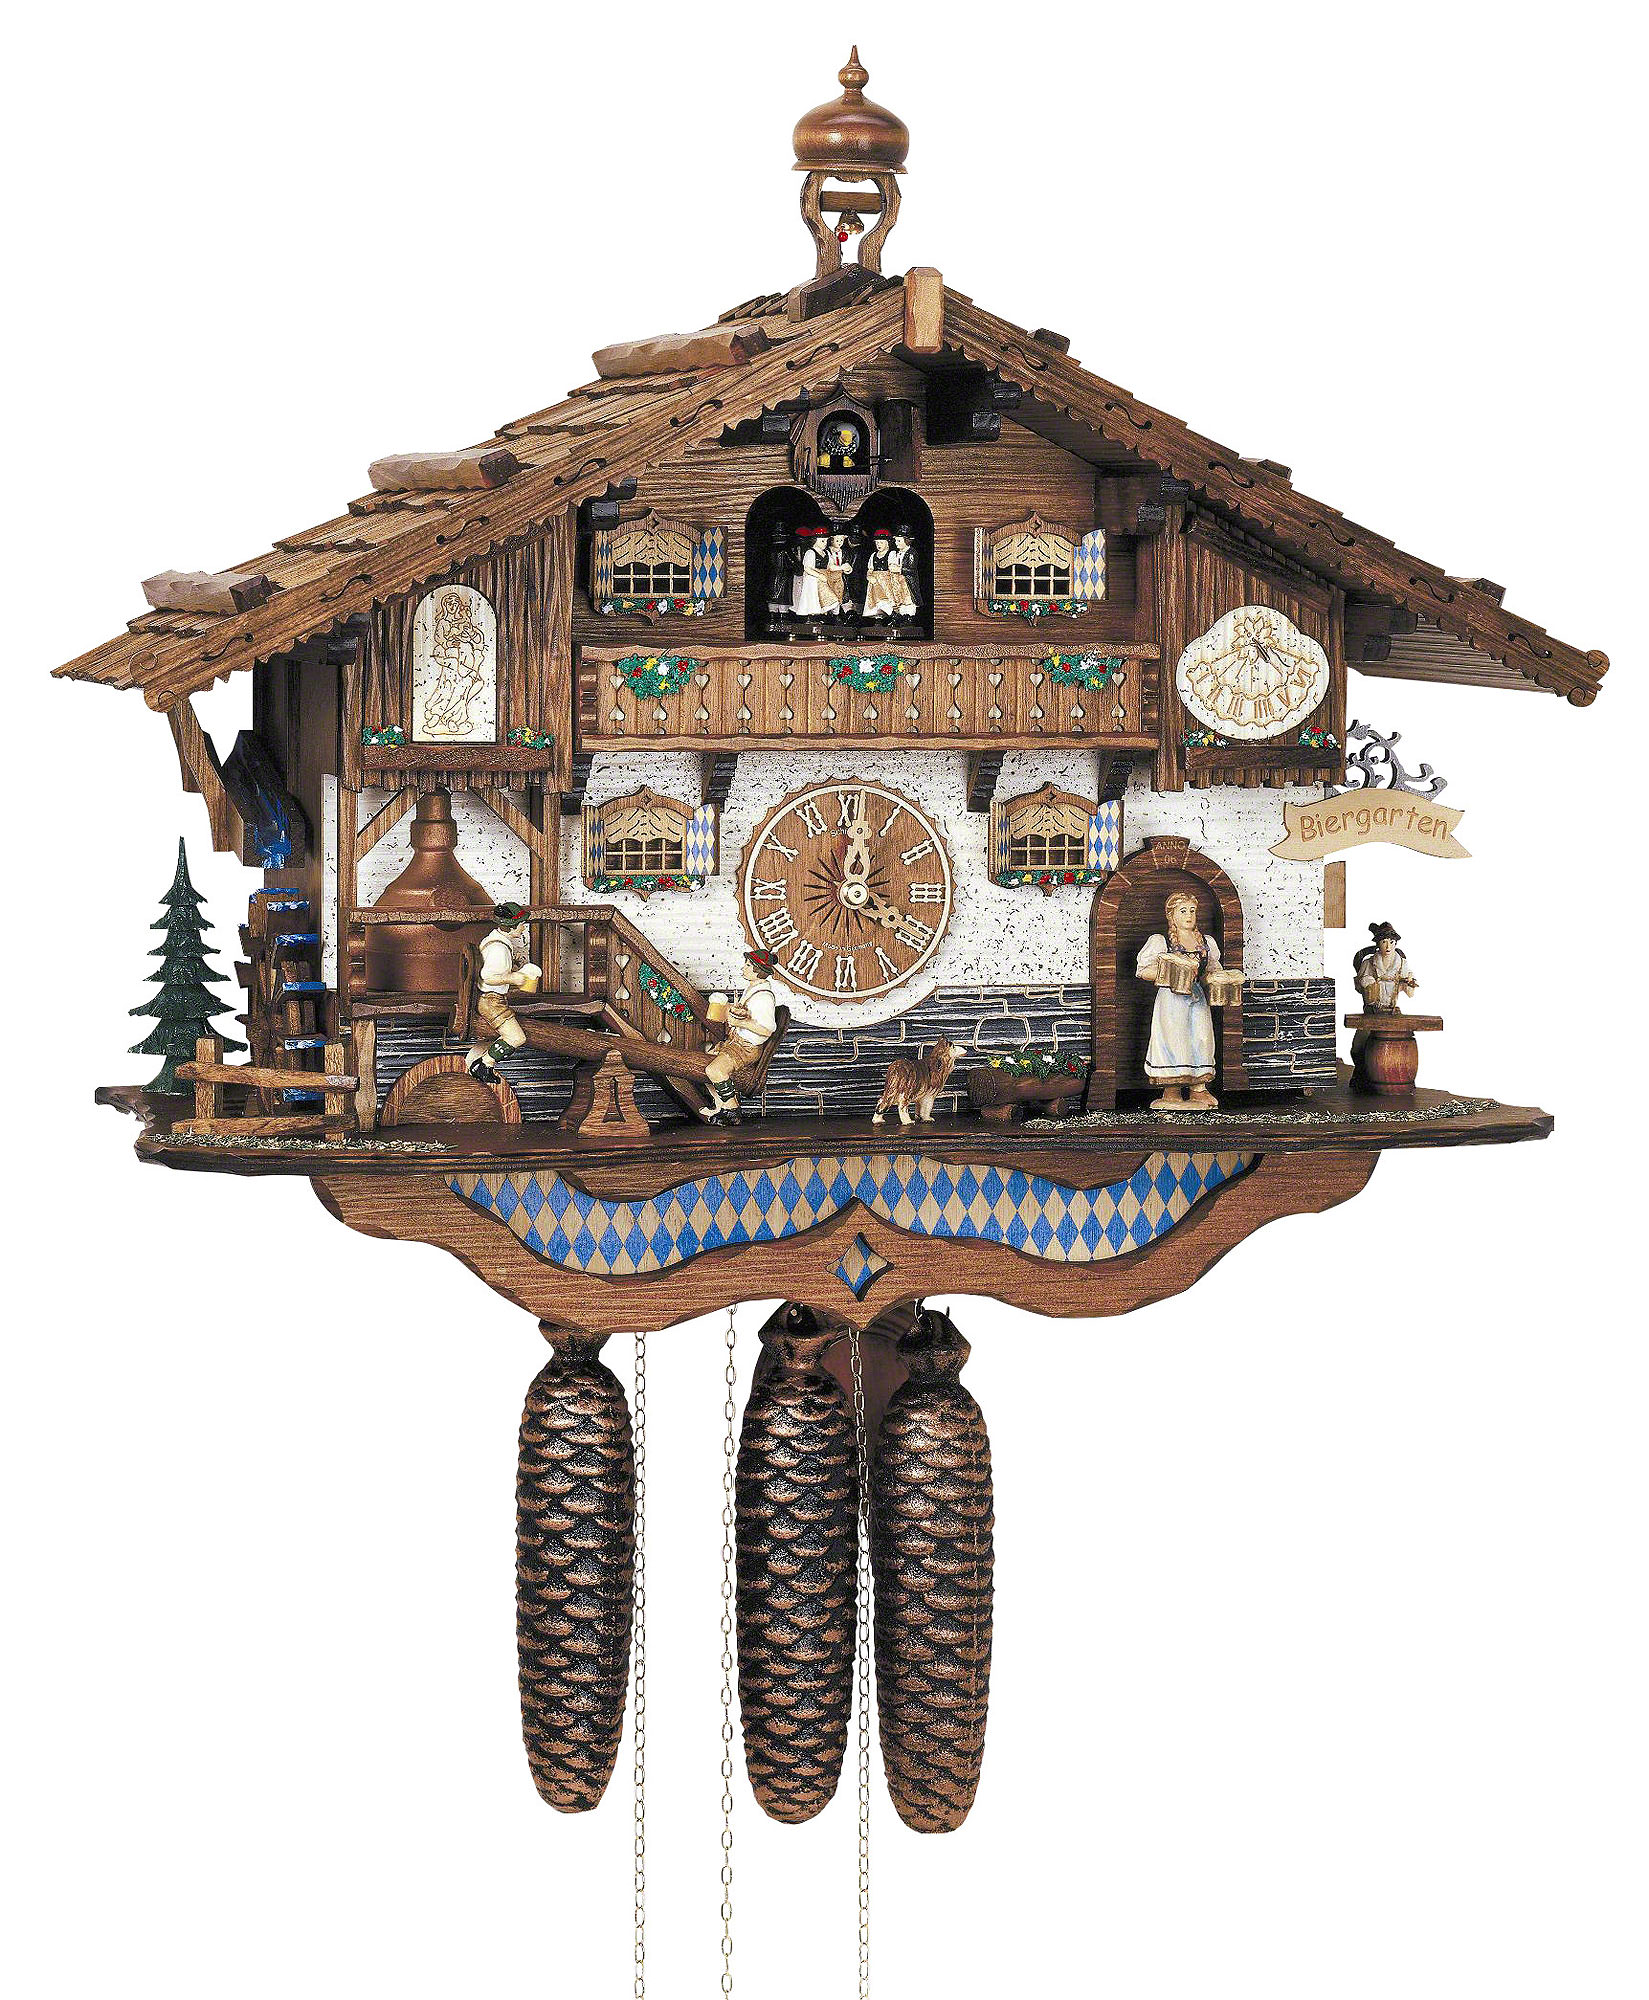 Cuckoo clock 8 day movement chalet style 44cm by anton How to make a cuckoo clock